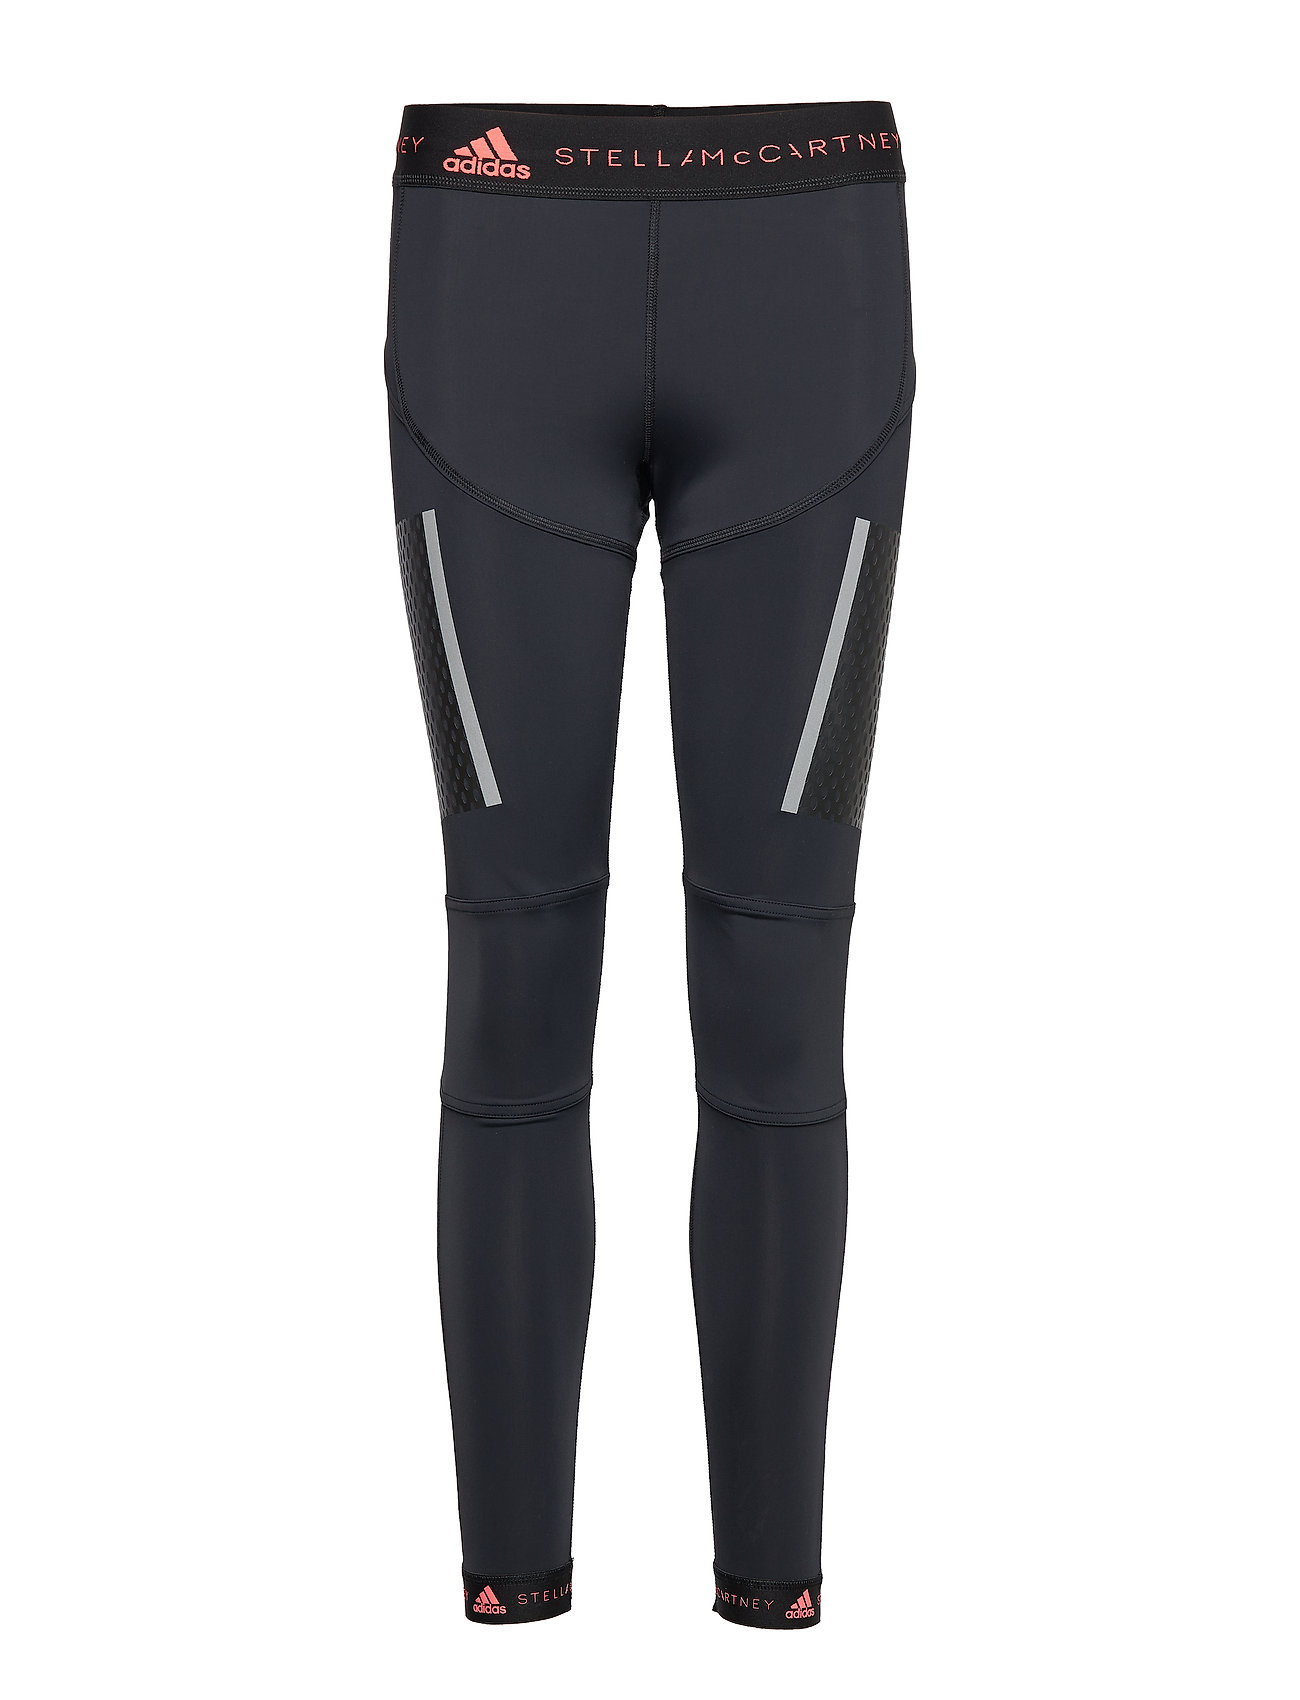 Adidas by Stella McCartney RUN TIGHT Leggings & tights